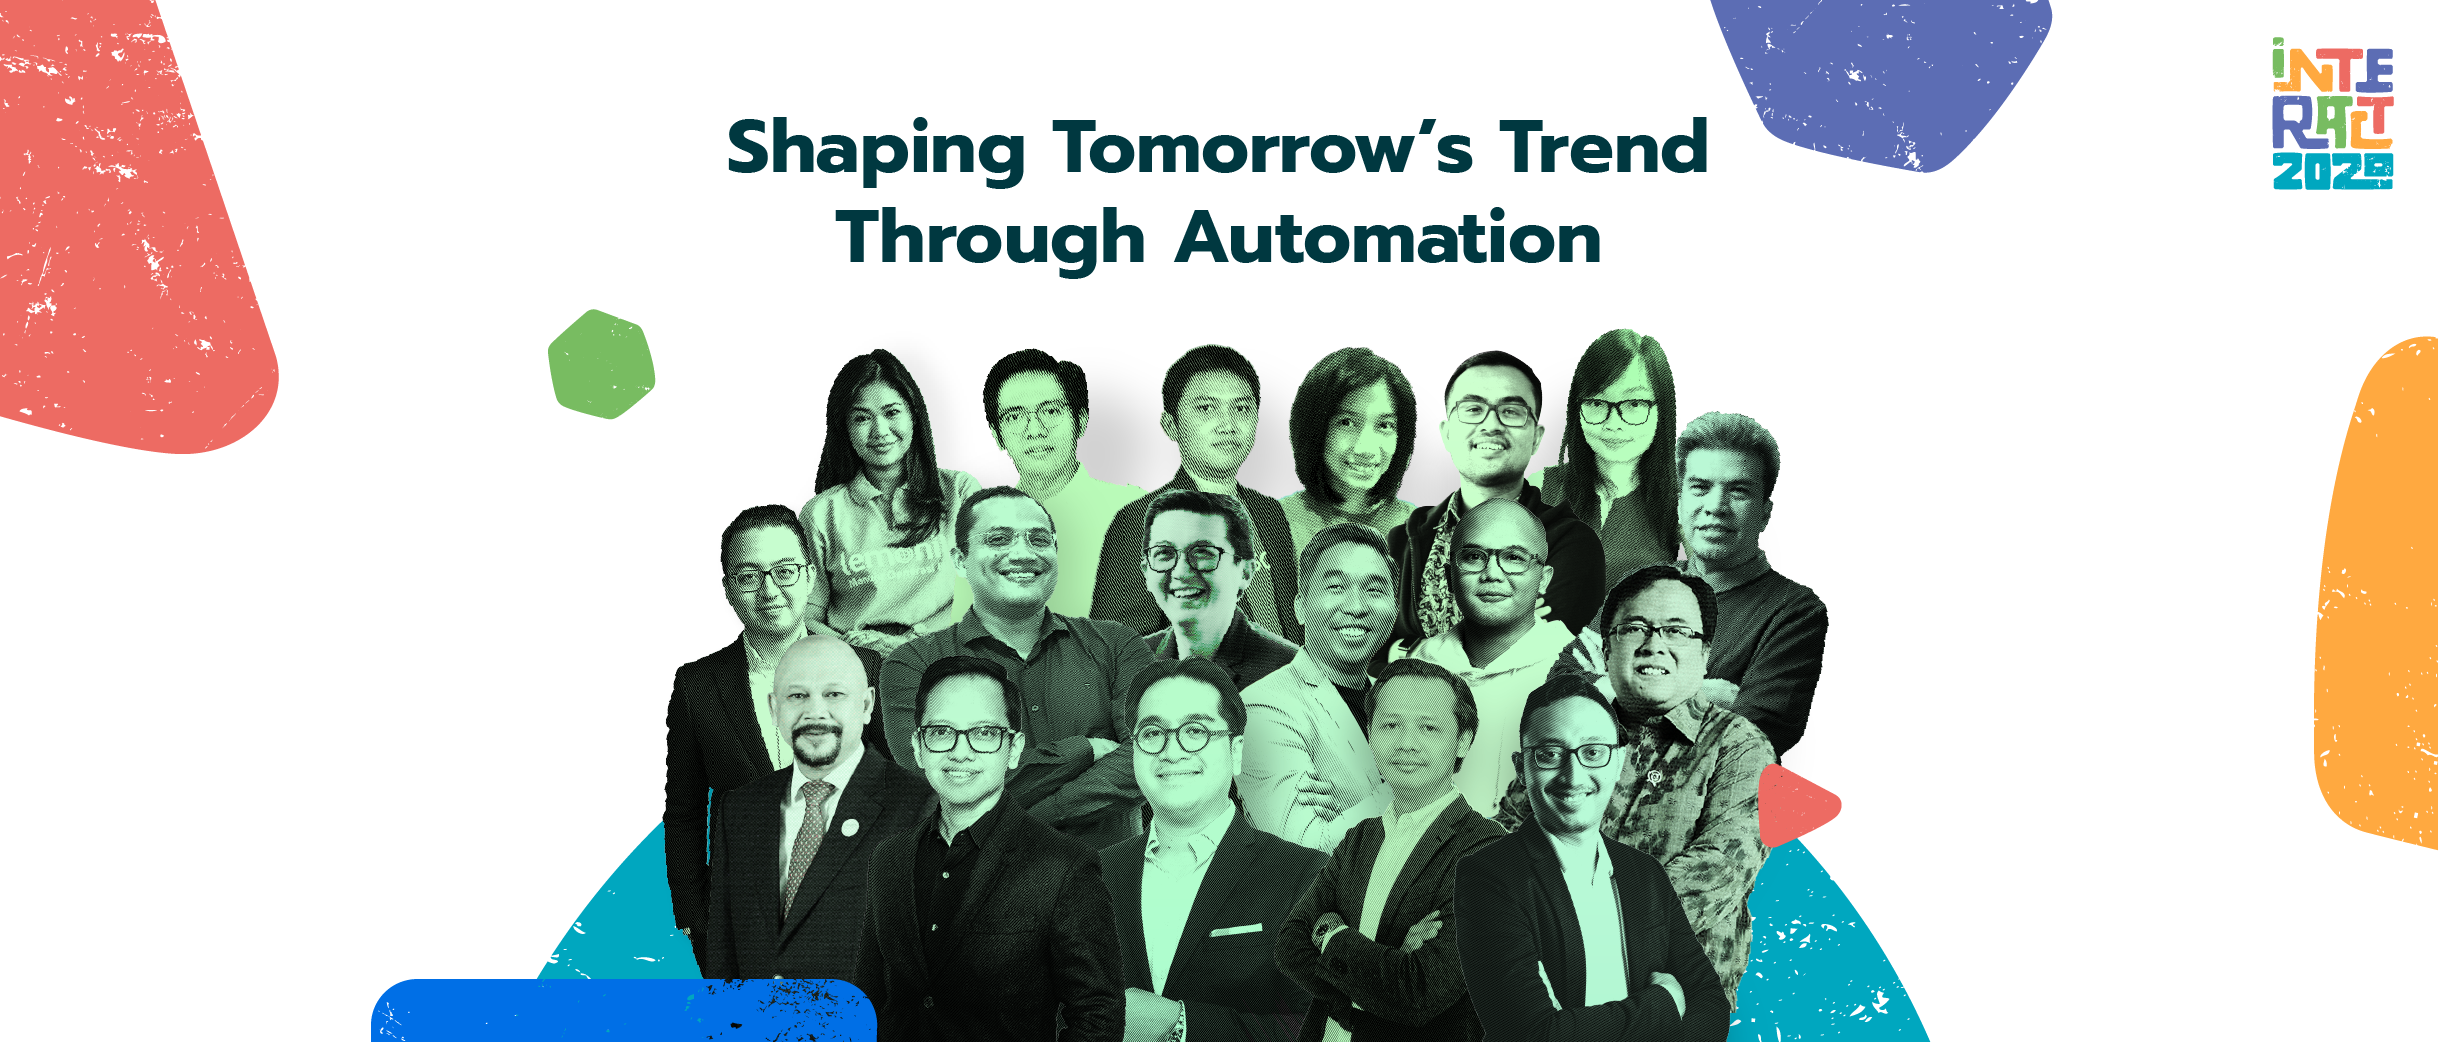 INTERACT 2020: Shaping Tomorrow's Trend Through Automation